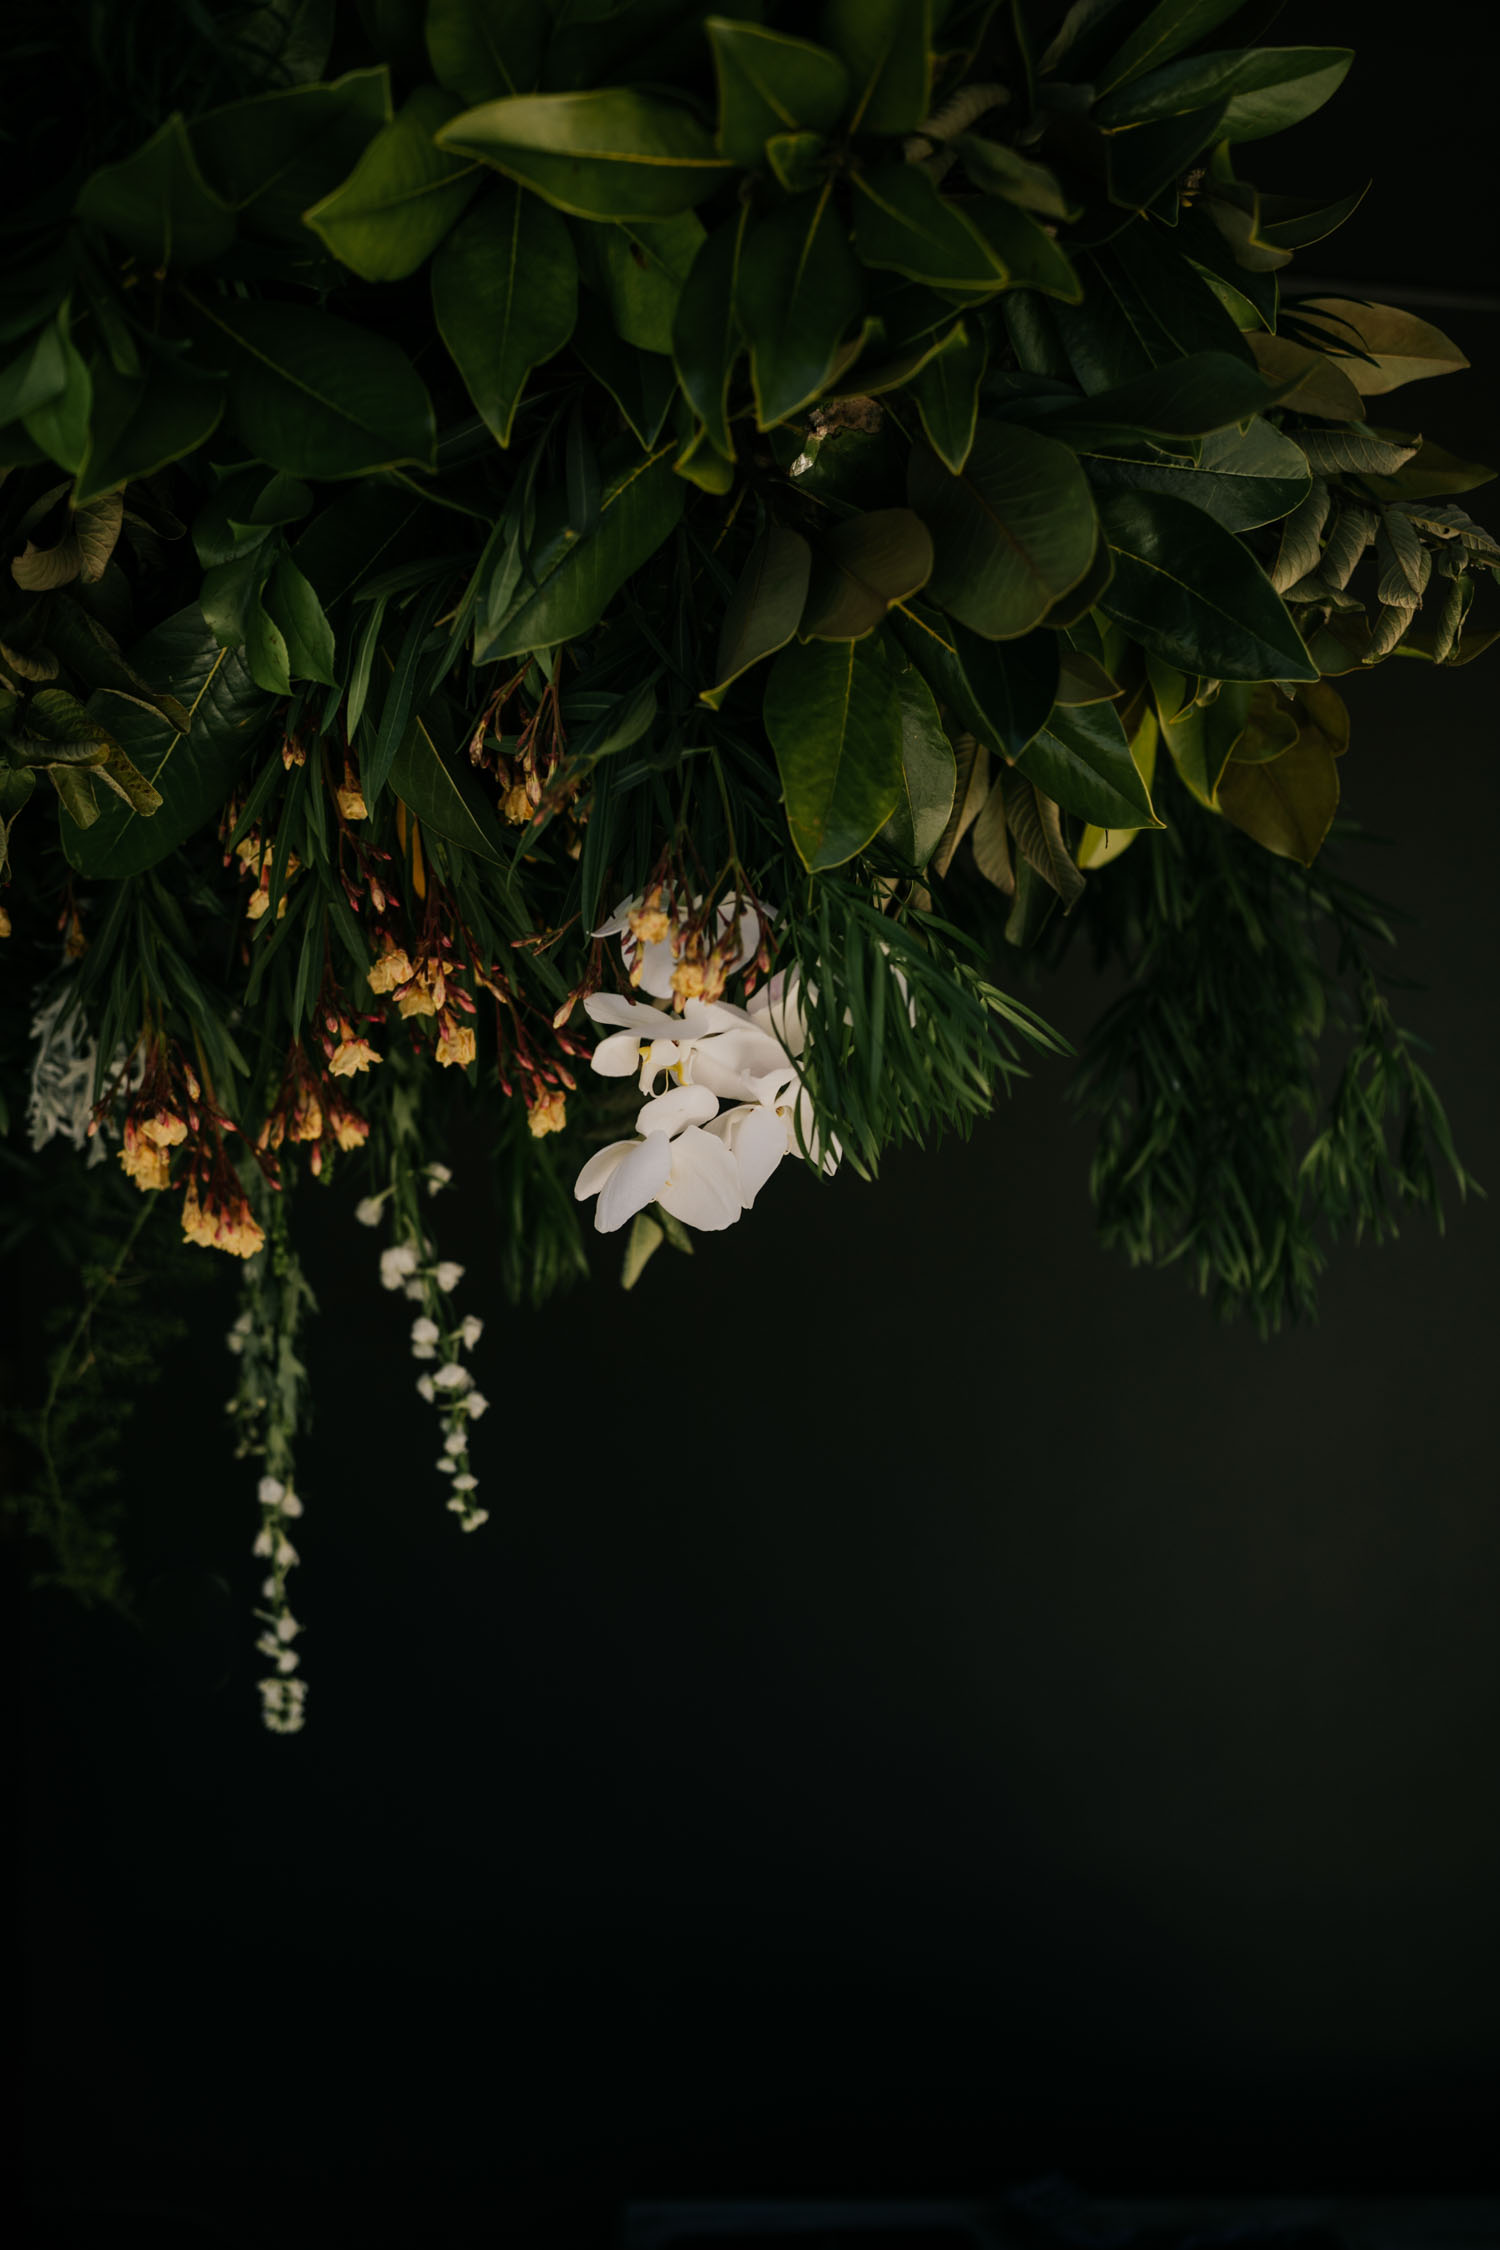 Green White Rust Wedding Flowers for Hanging Floral Installation Above Table